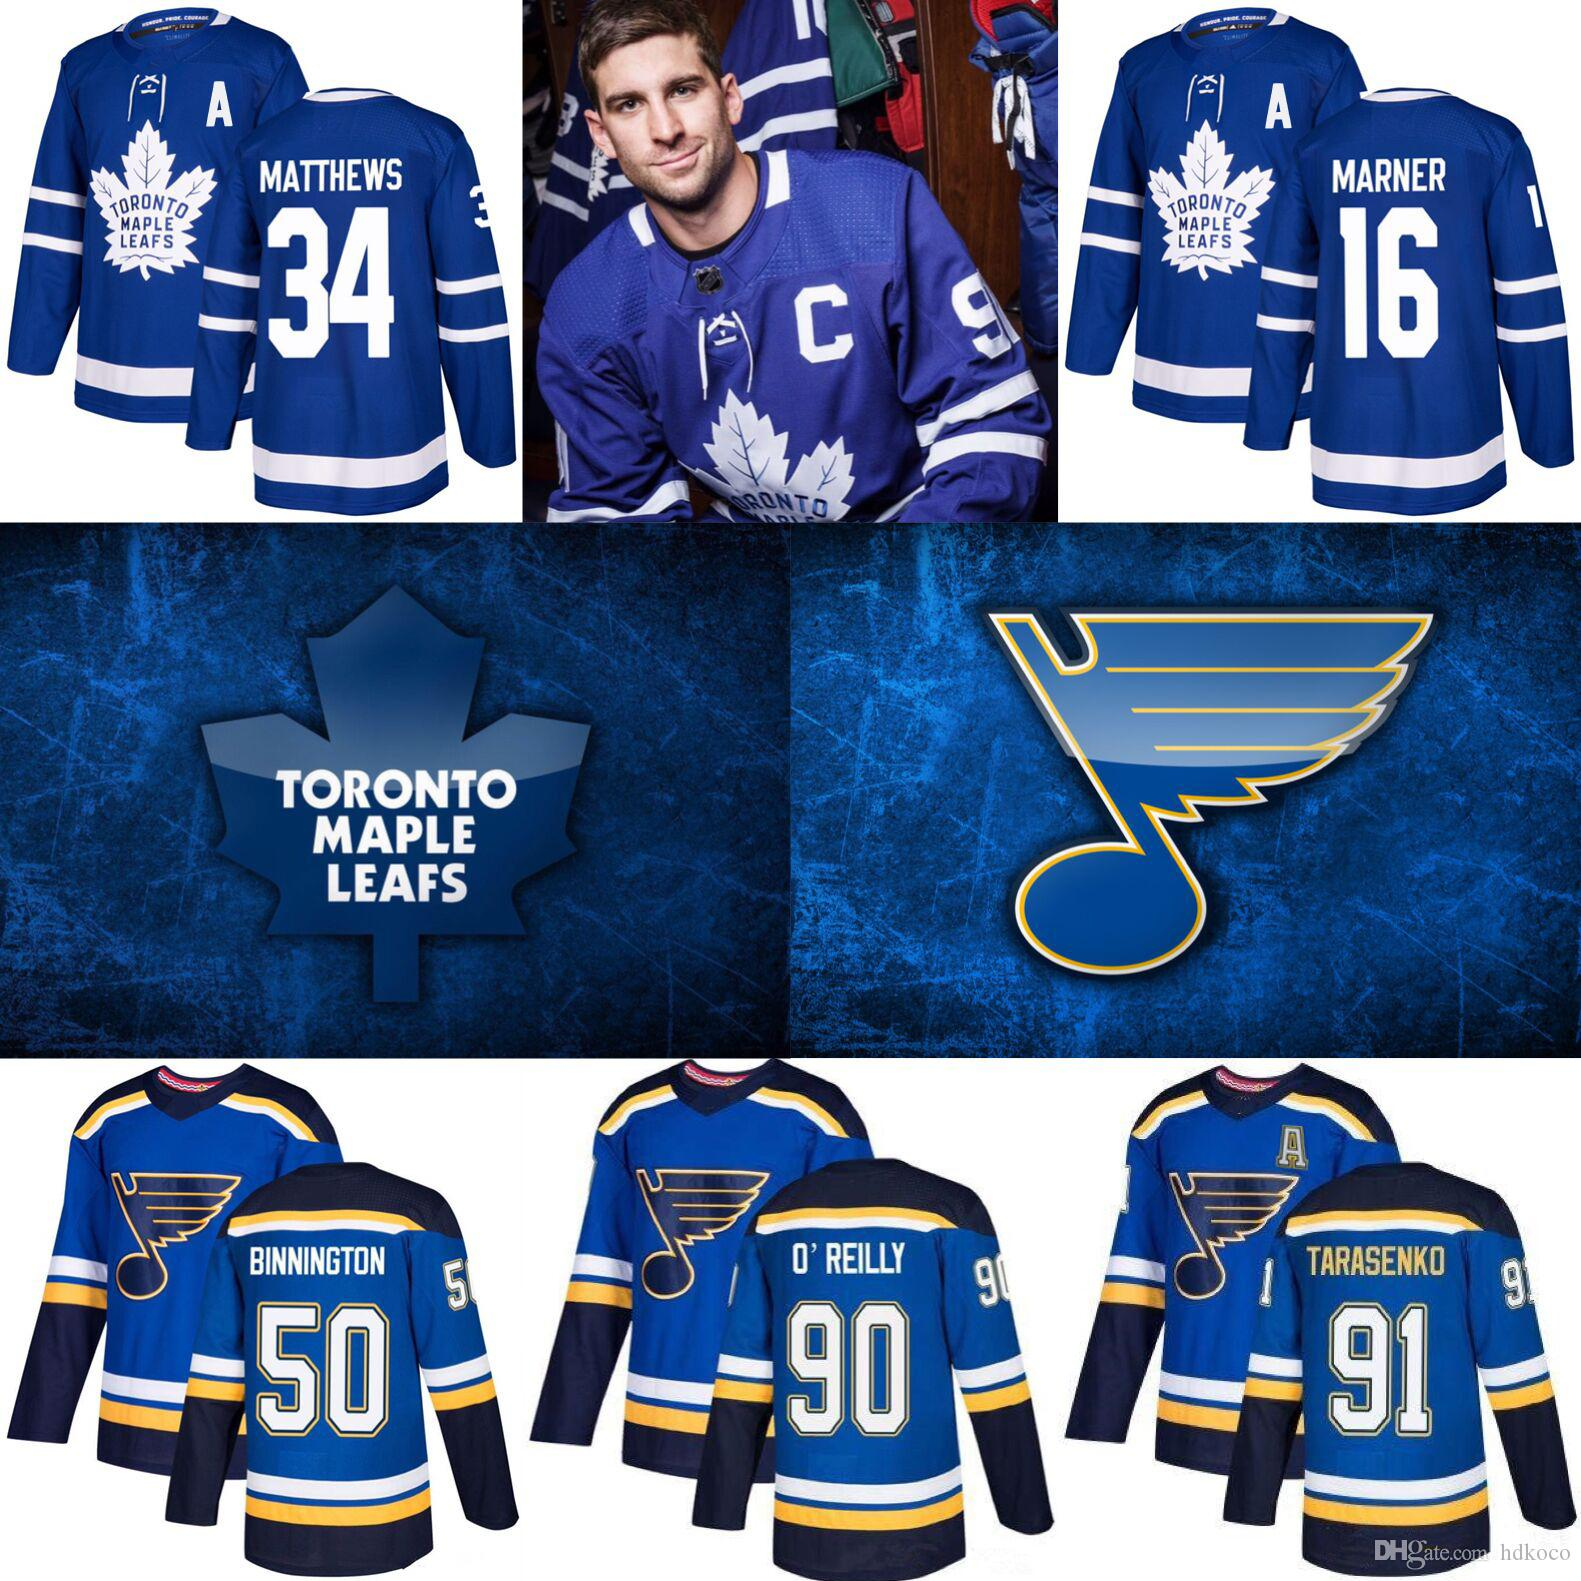 St. Louis Blues Jersey 2019 Stanley Cup Champions Toronto Maple Leafs William Nylander Hockey Jerseys 91 Tarasenko 90 O'Reilly 17 Schwartz